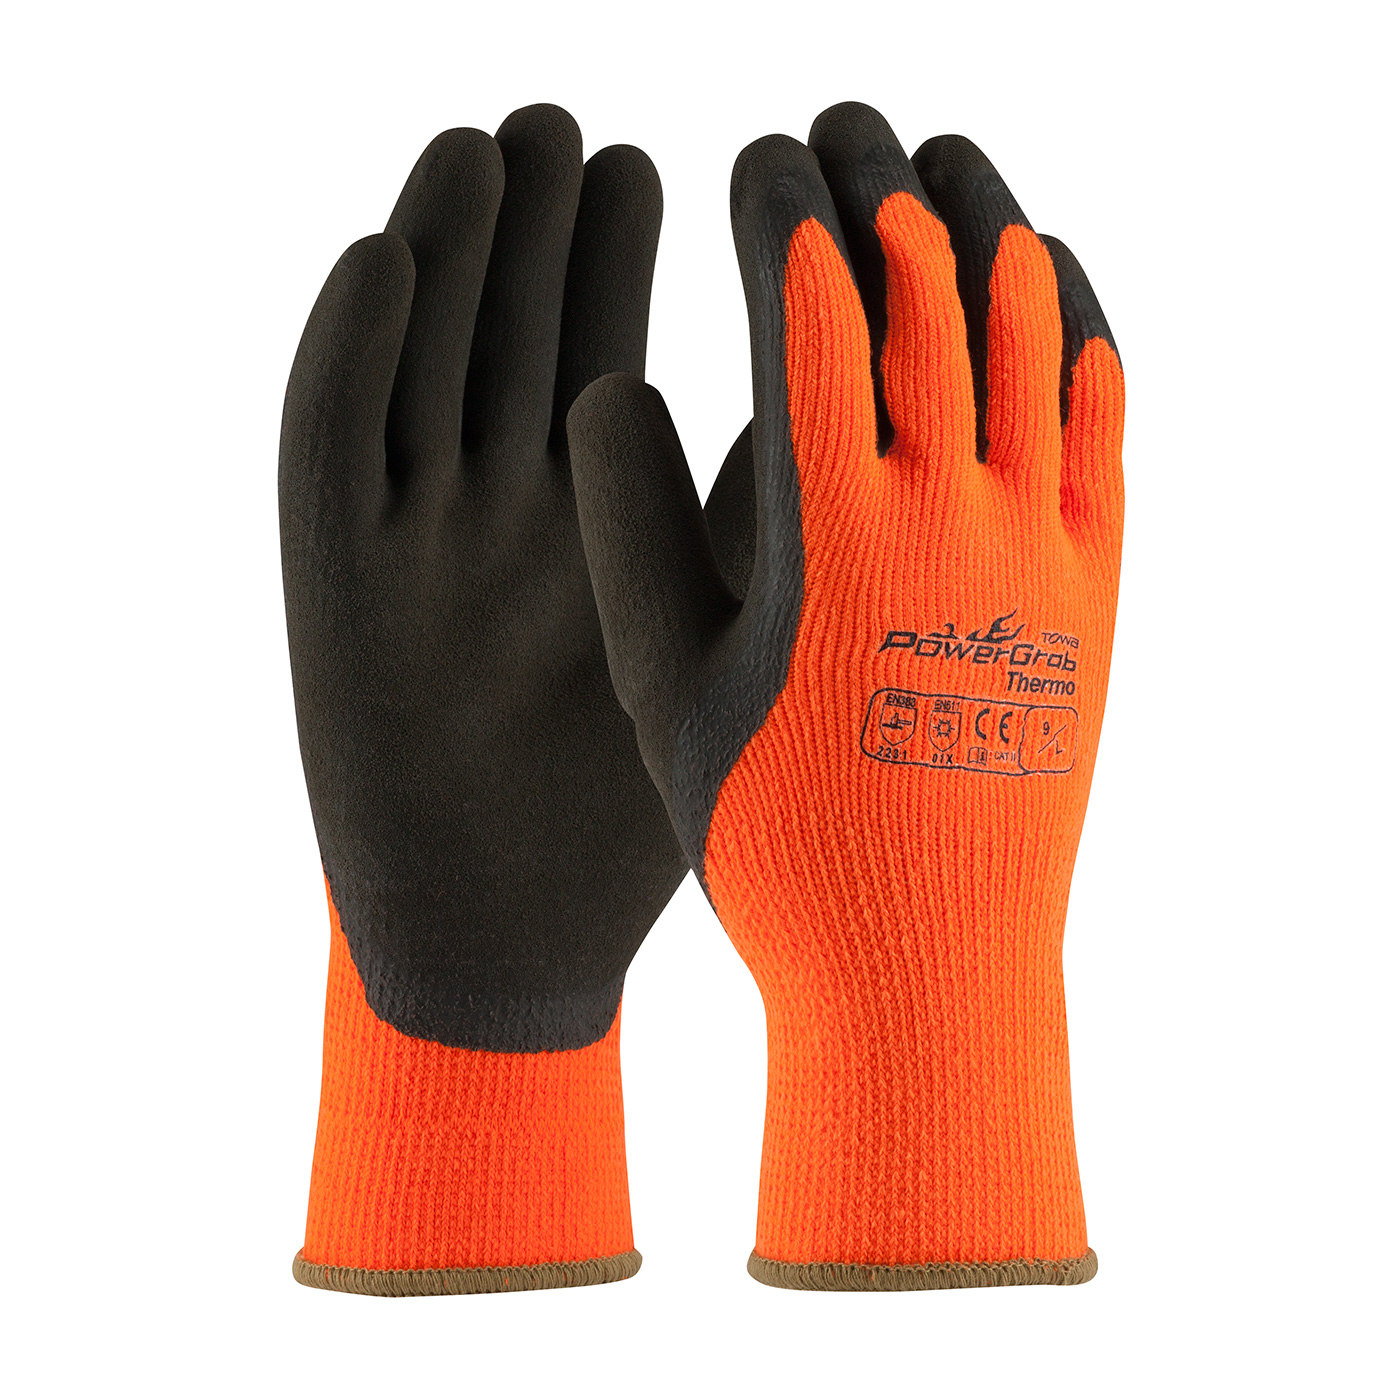 #41-1400 PIP Hi-Vis Orange PowerGrab™ Thermo Coated Winter Work Gloves with Latex Microfinish™ Grip,